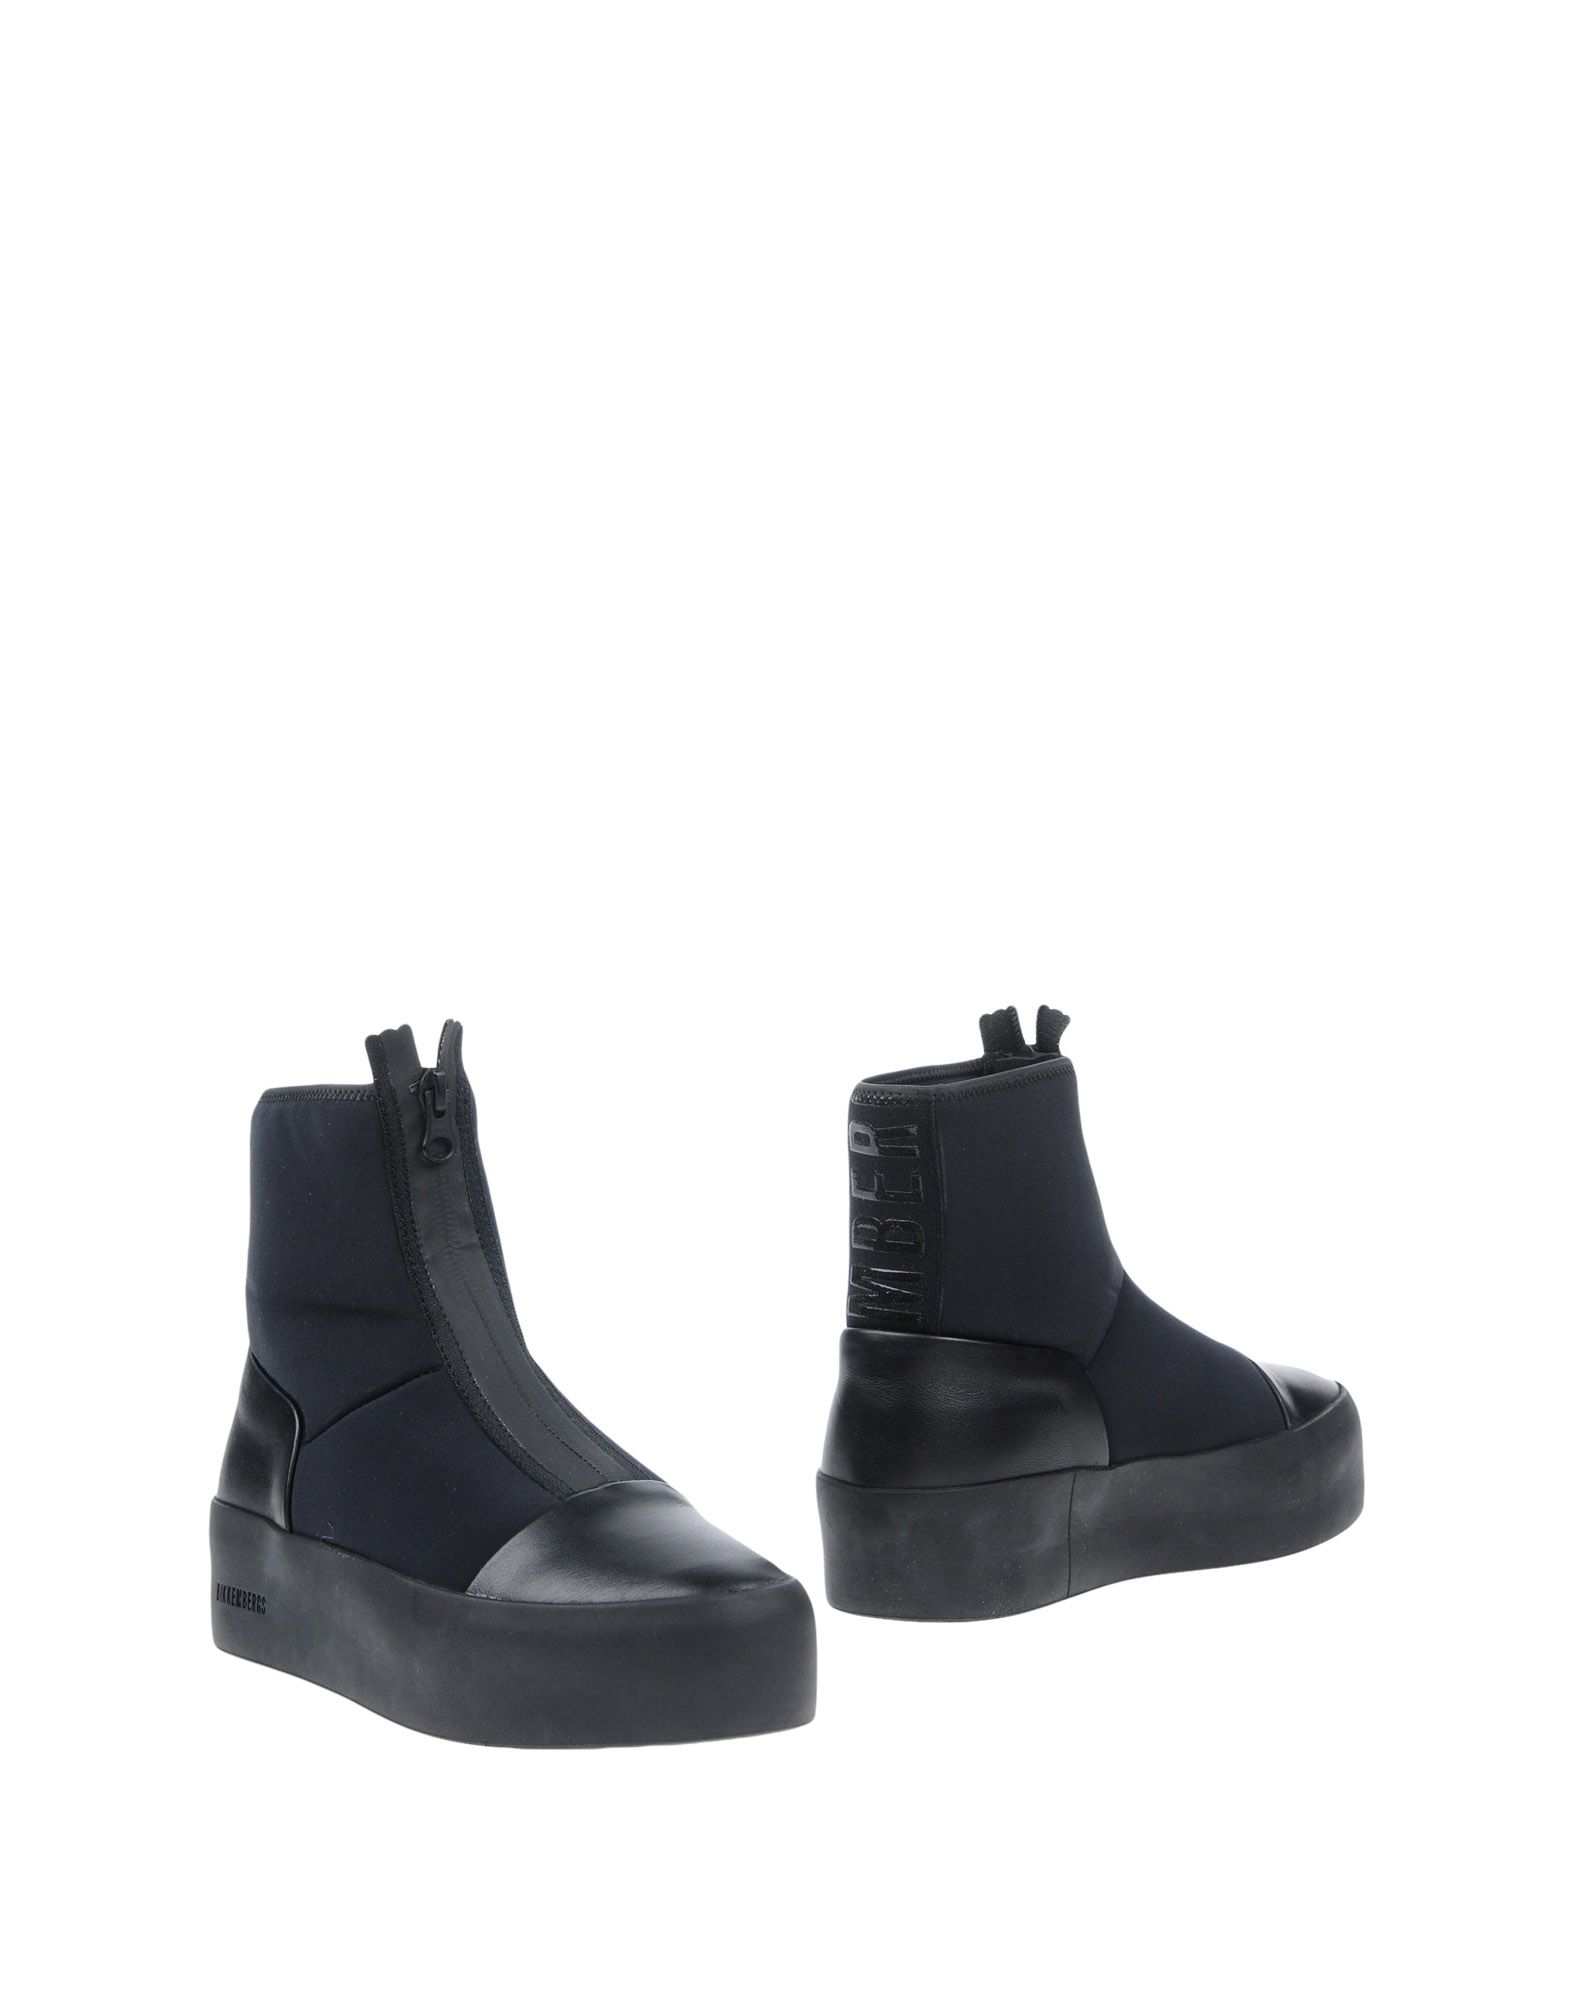 BIKKEMBERGS Ankle Boots in Black